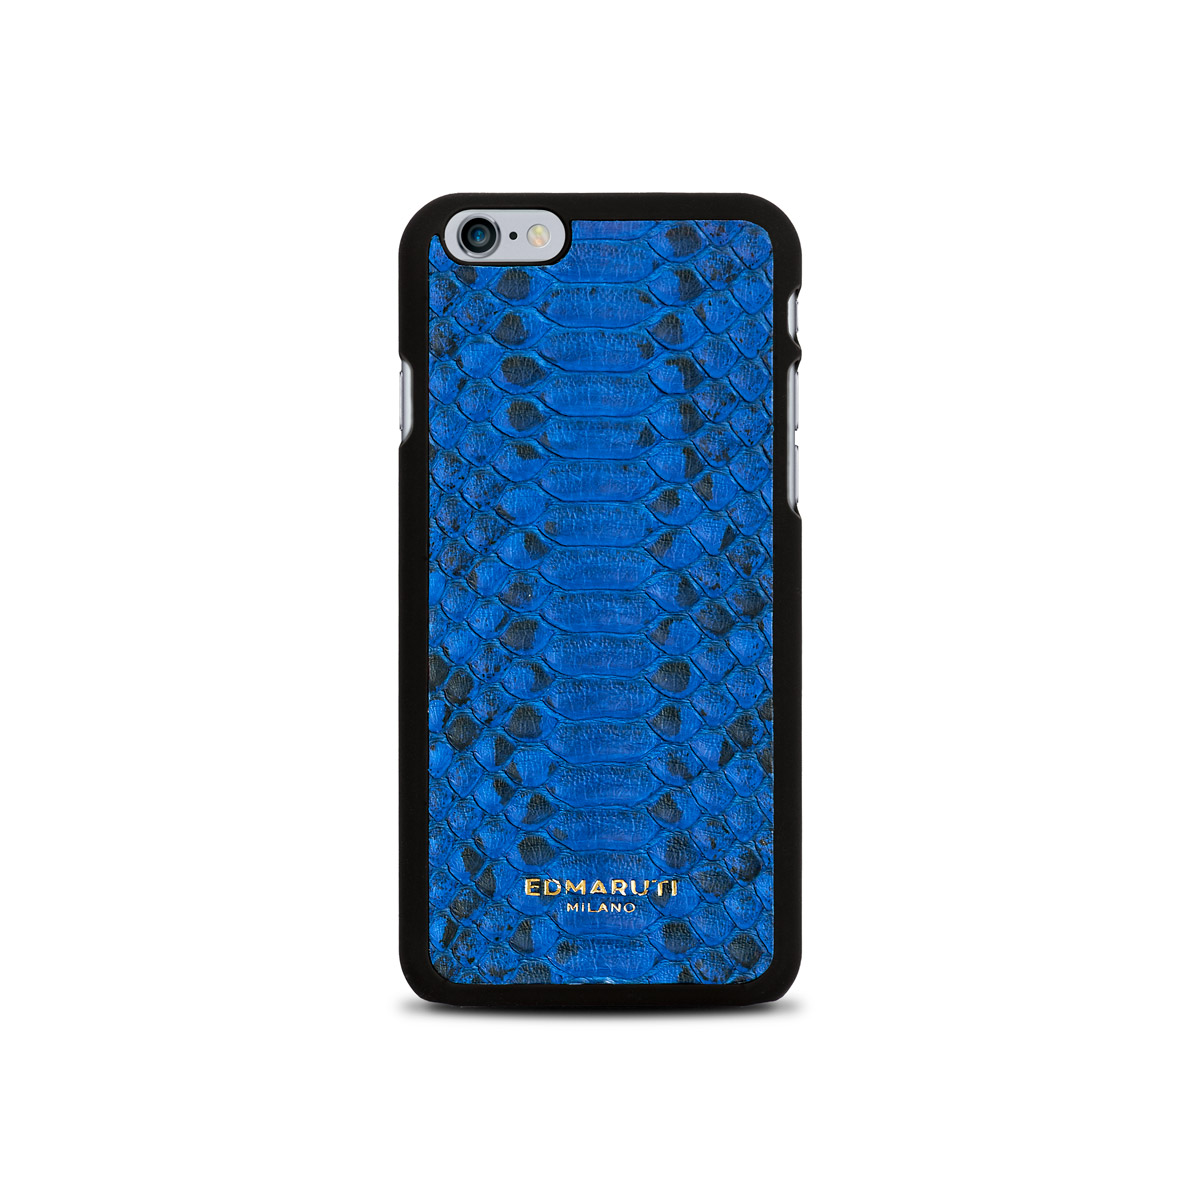 iphone 6 phone covers iphone 6 6s python blue edmaruti 3077